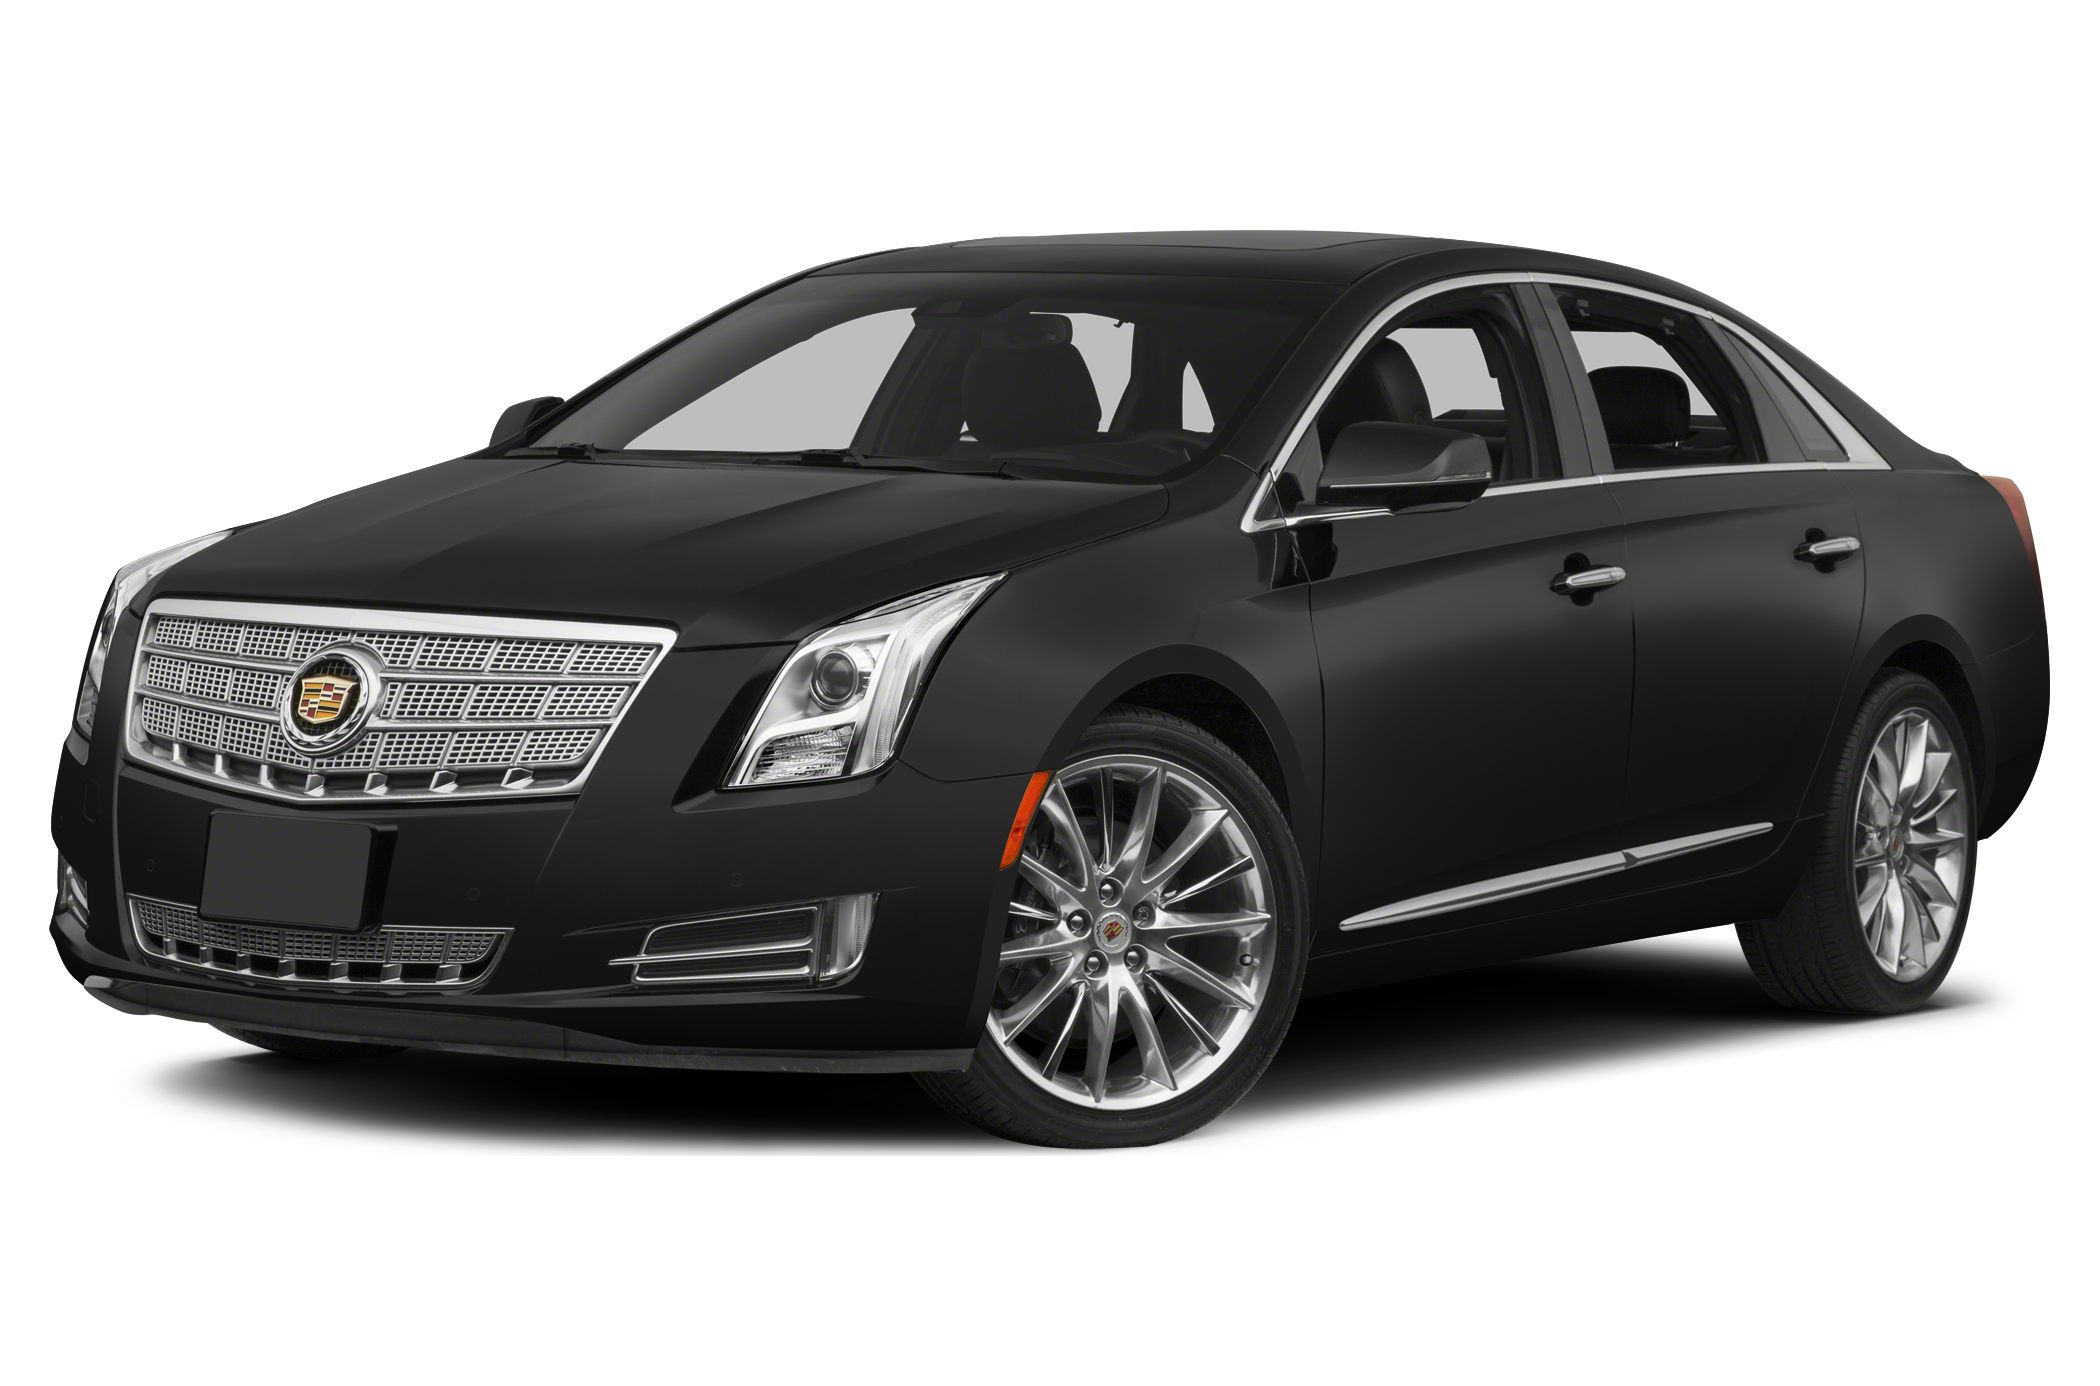 2015 Cadillac XTS Luxury Sedan for sale in Pinehurst for $52,565 with 10 miles